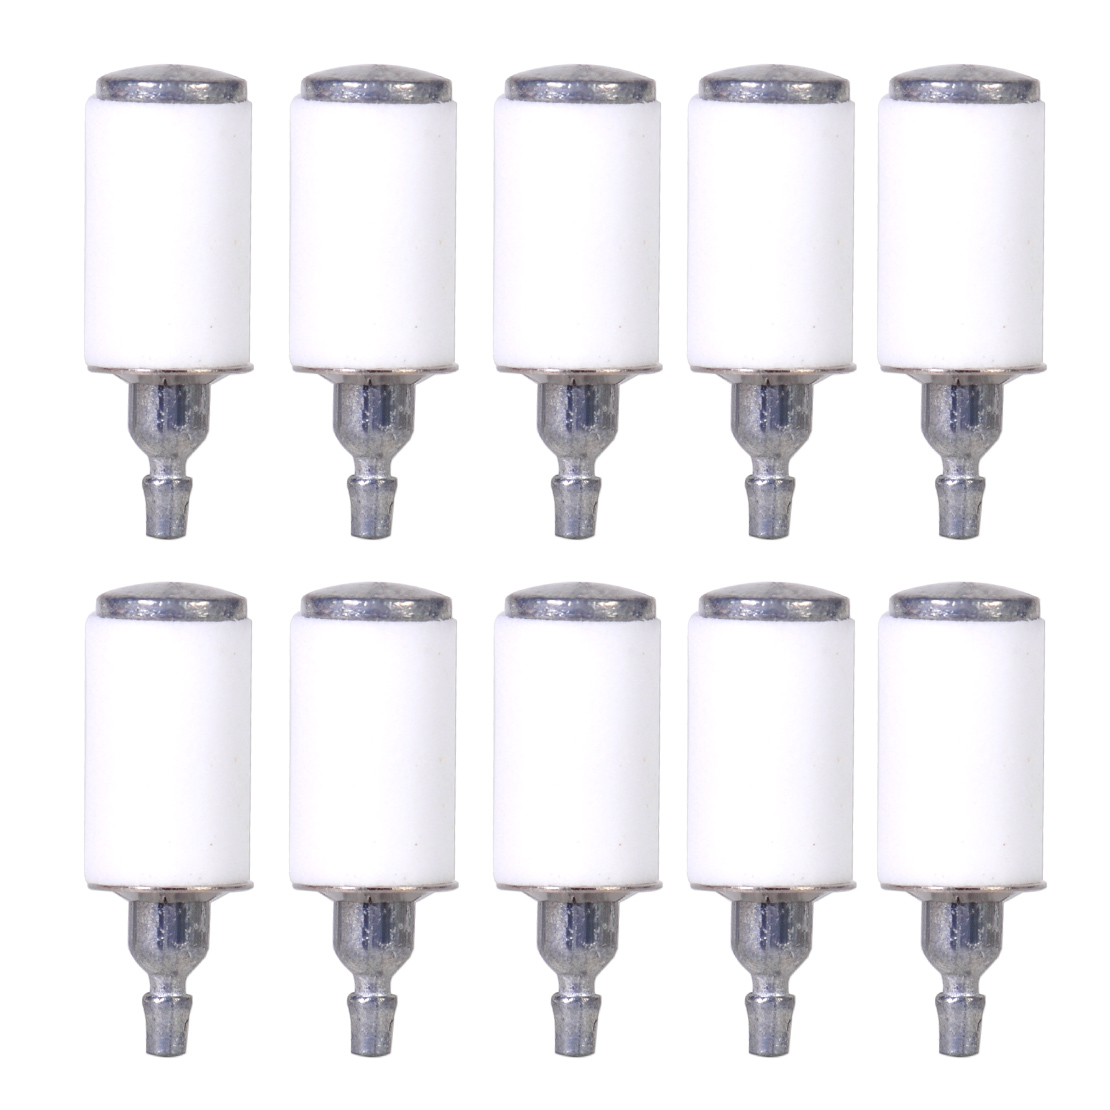 10x fuel filter 530095646 fit for husqvarna weedeater